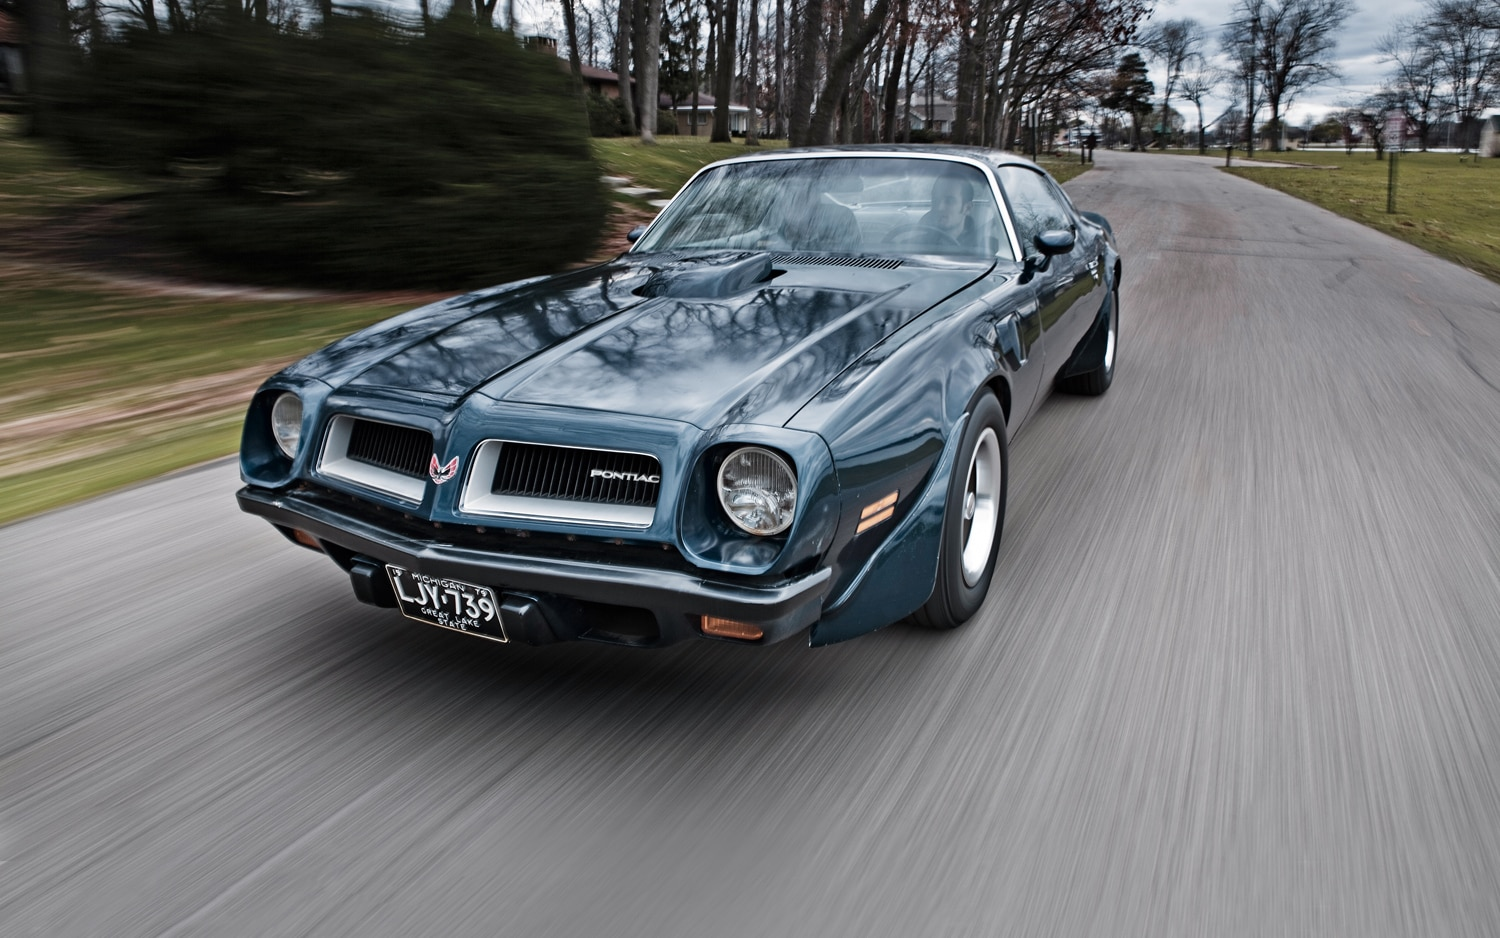 Pontiac Firebird Trans Am SD 455 Front Three Quarter1